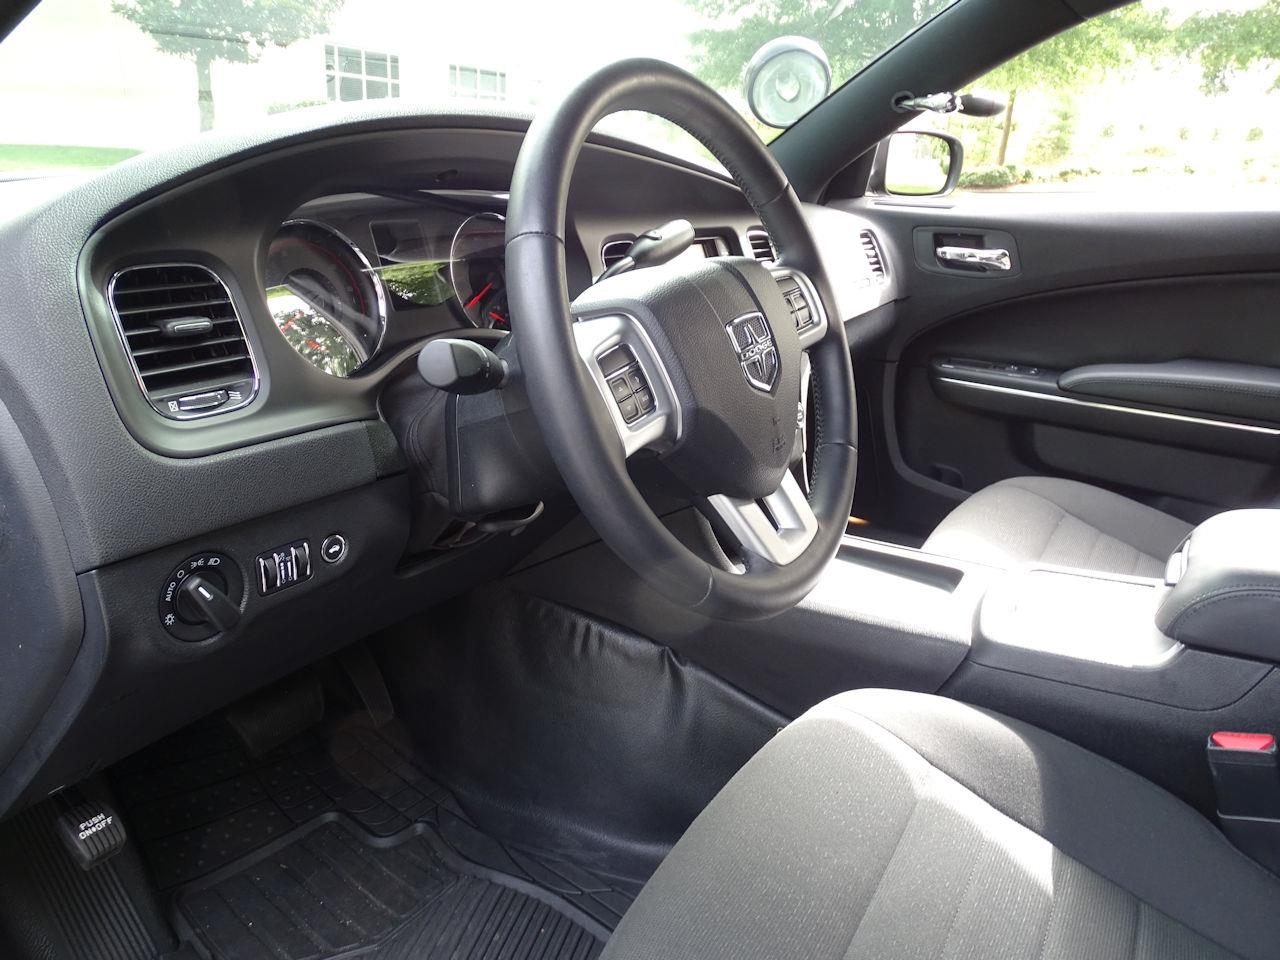 2014 Dodge Charger (CC-1367673) for sale in O'Fallon, Illinois